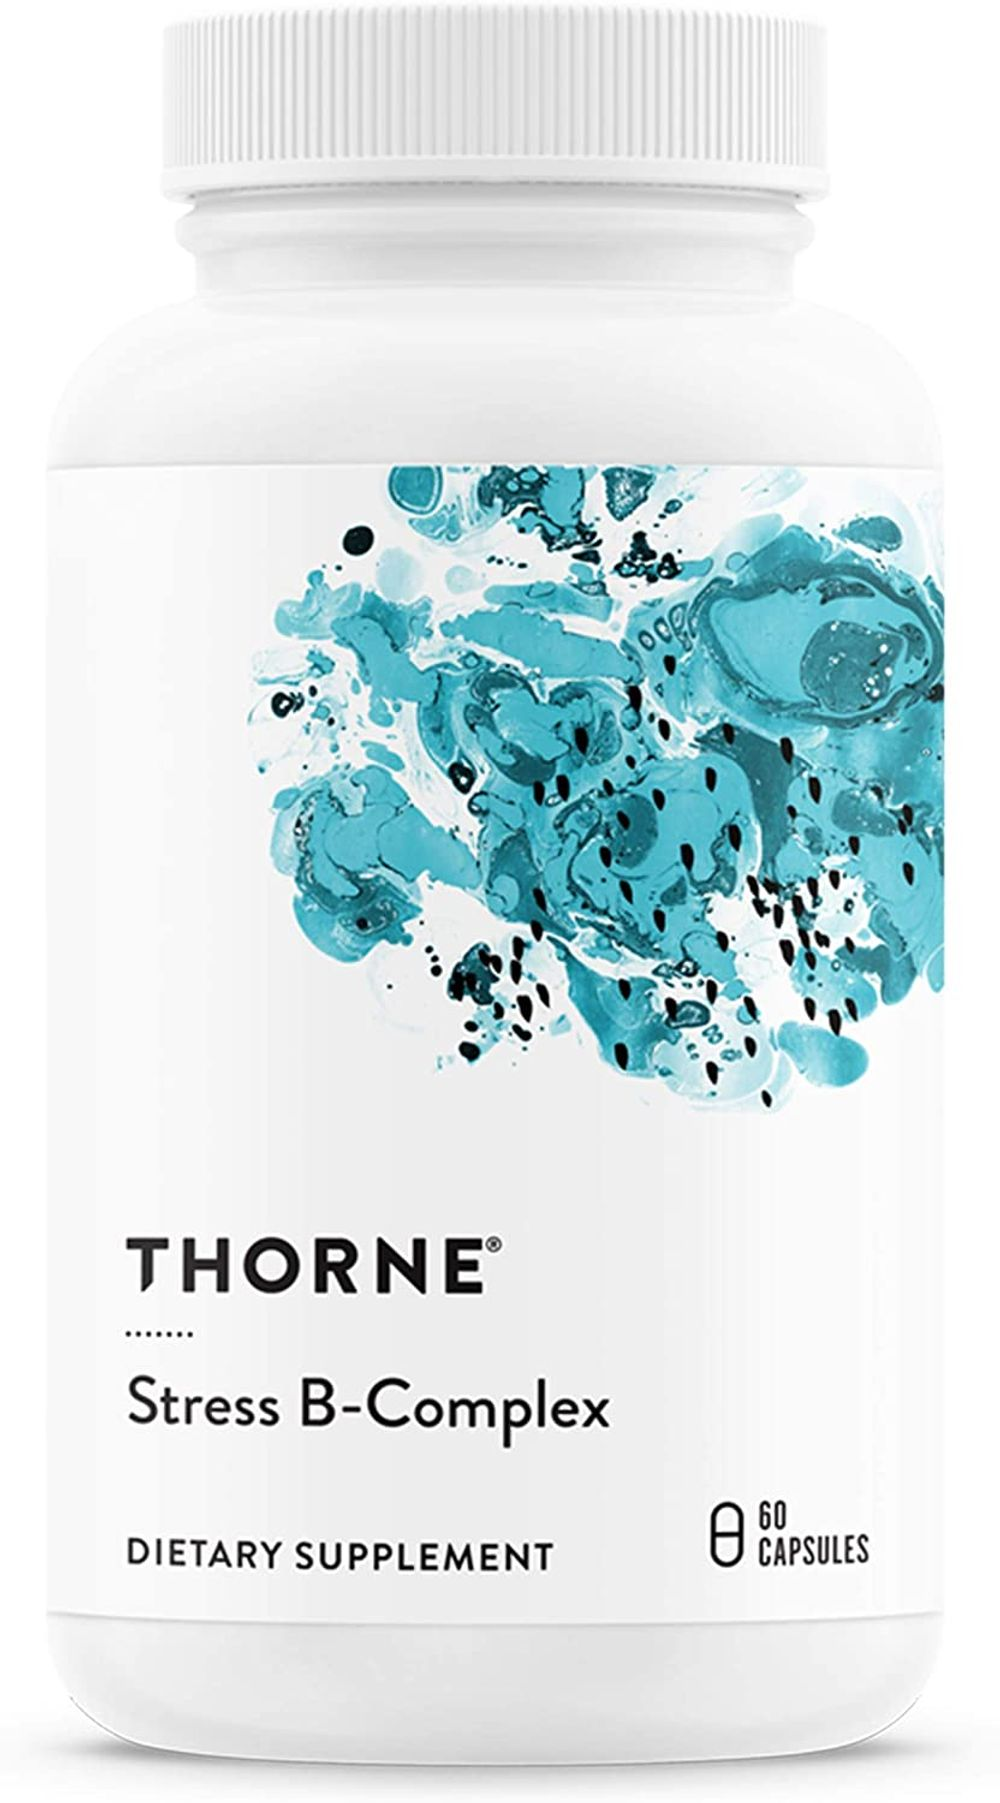 Thorne Research - Stress B-Complex - Vitamin B Complex for Stress Support - 60 Capsules